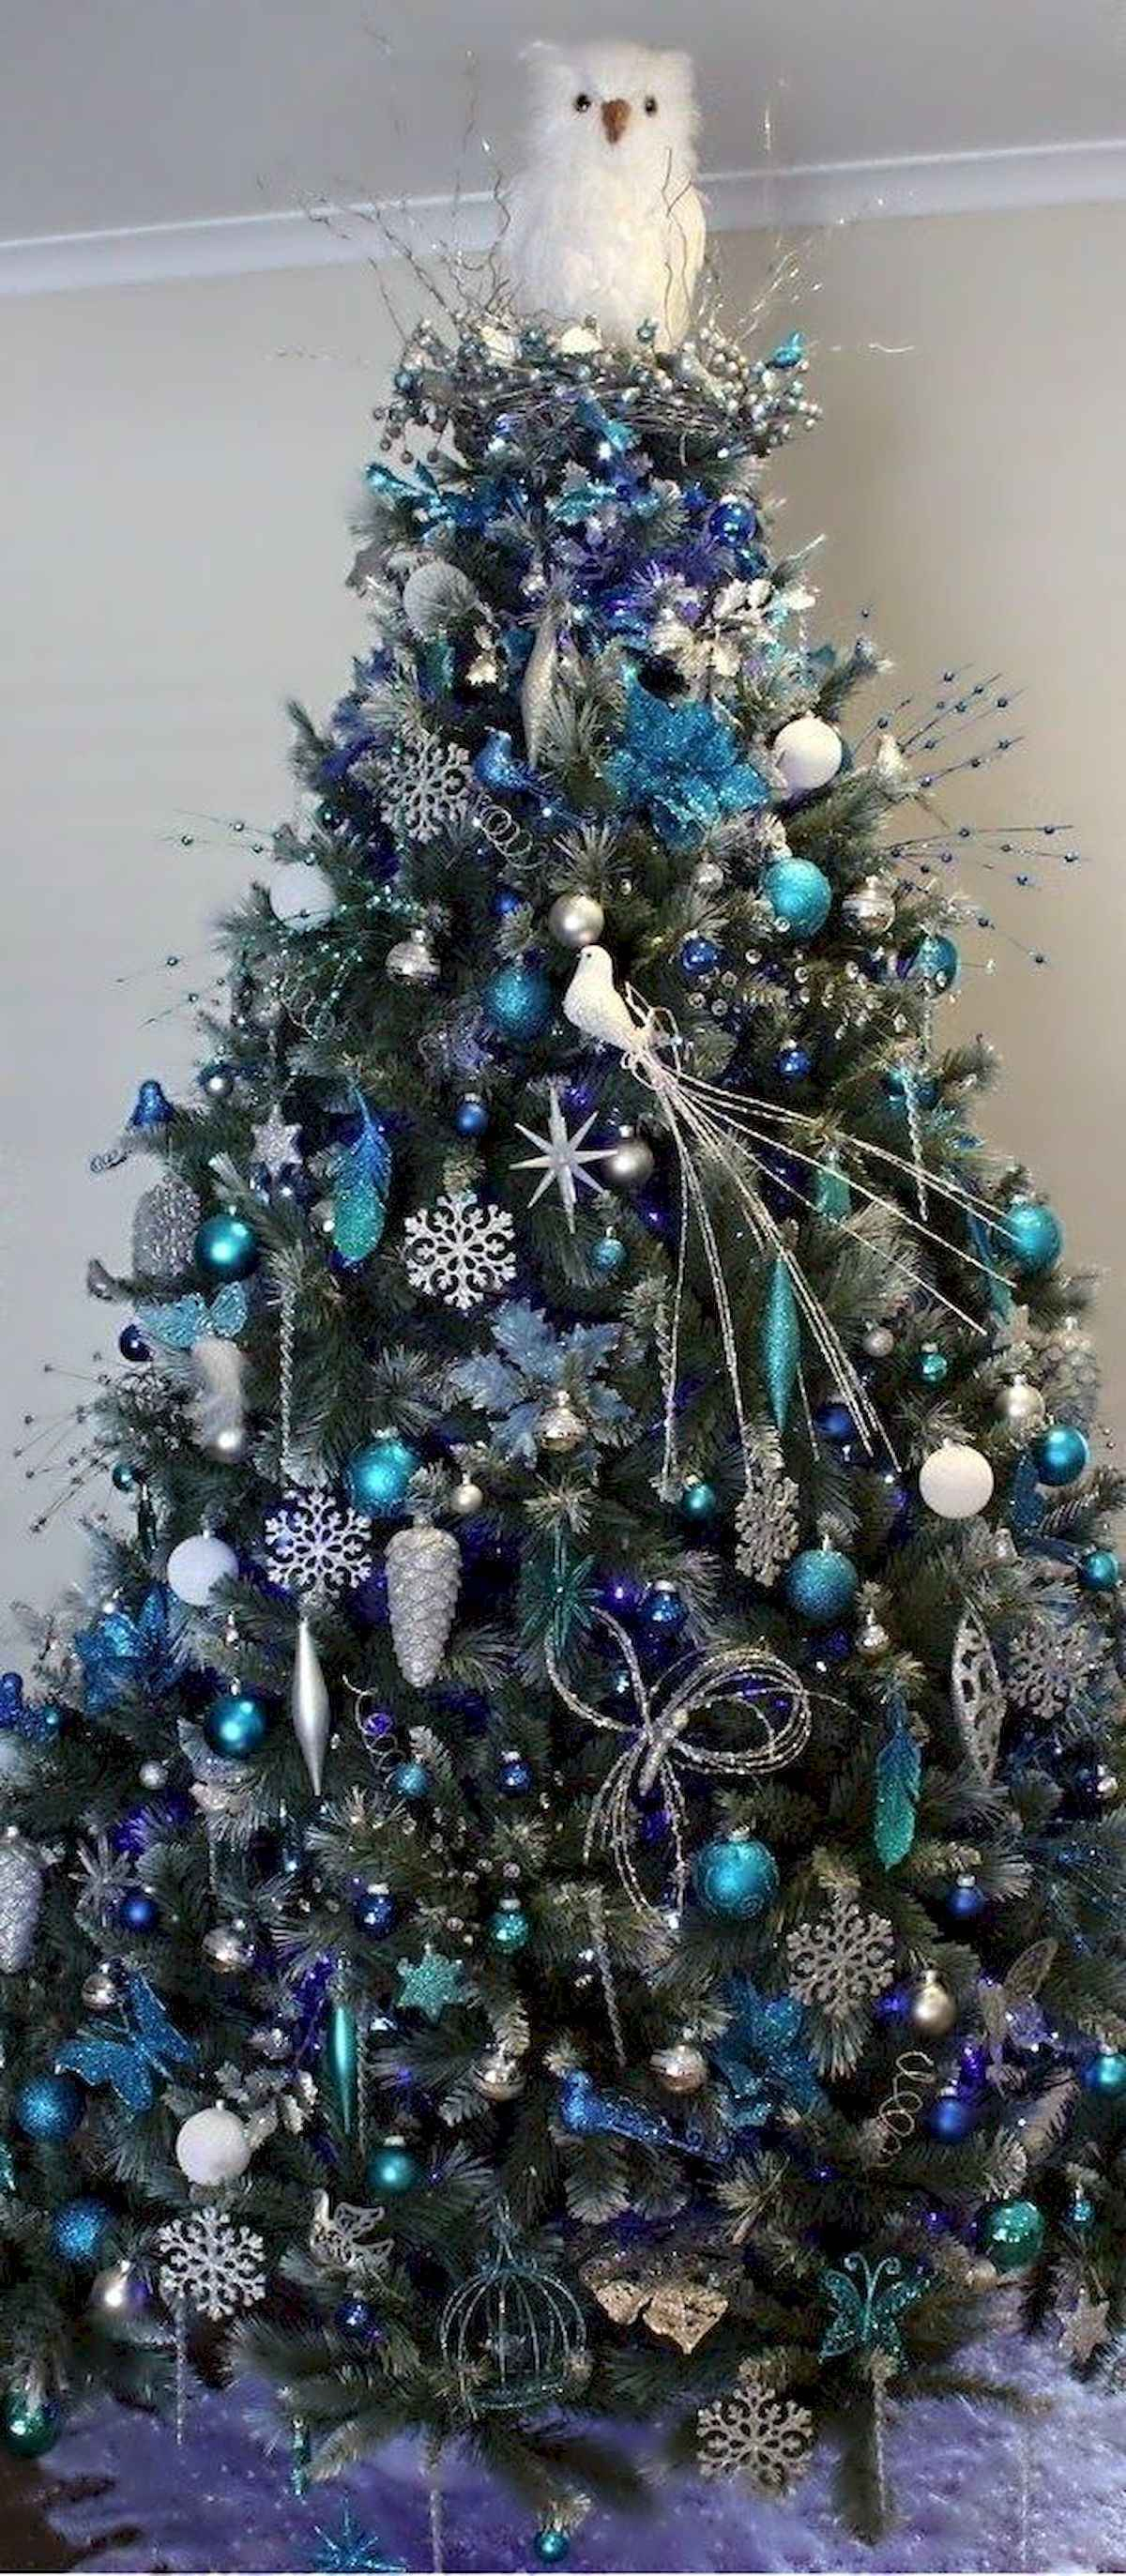 60 awesome christmas tree decorations ideas (26)